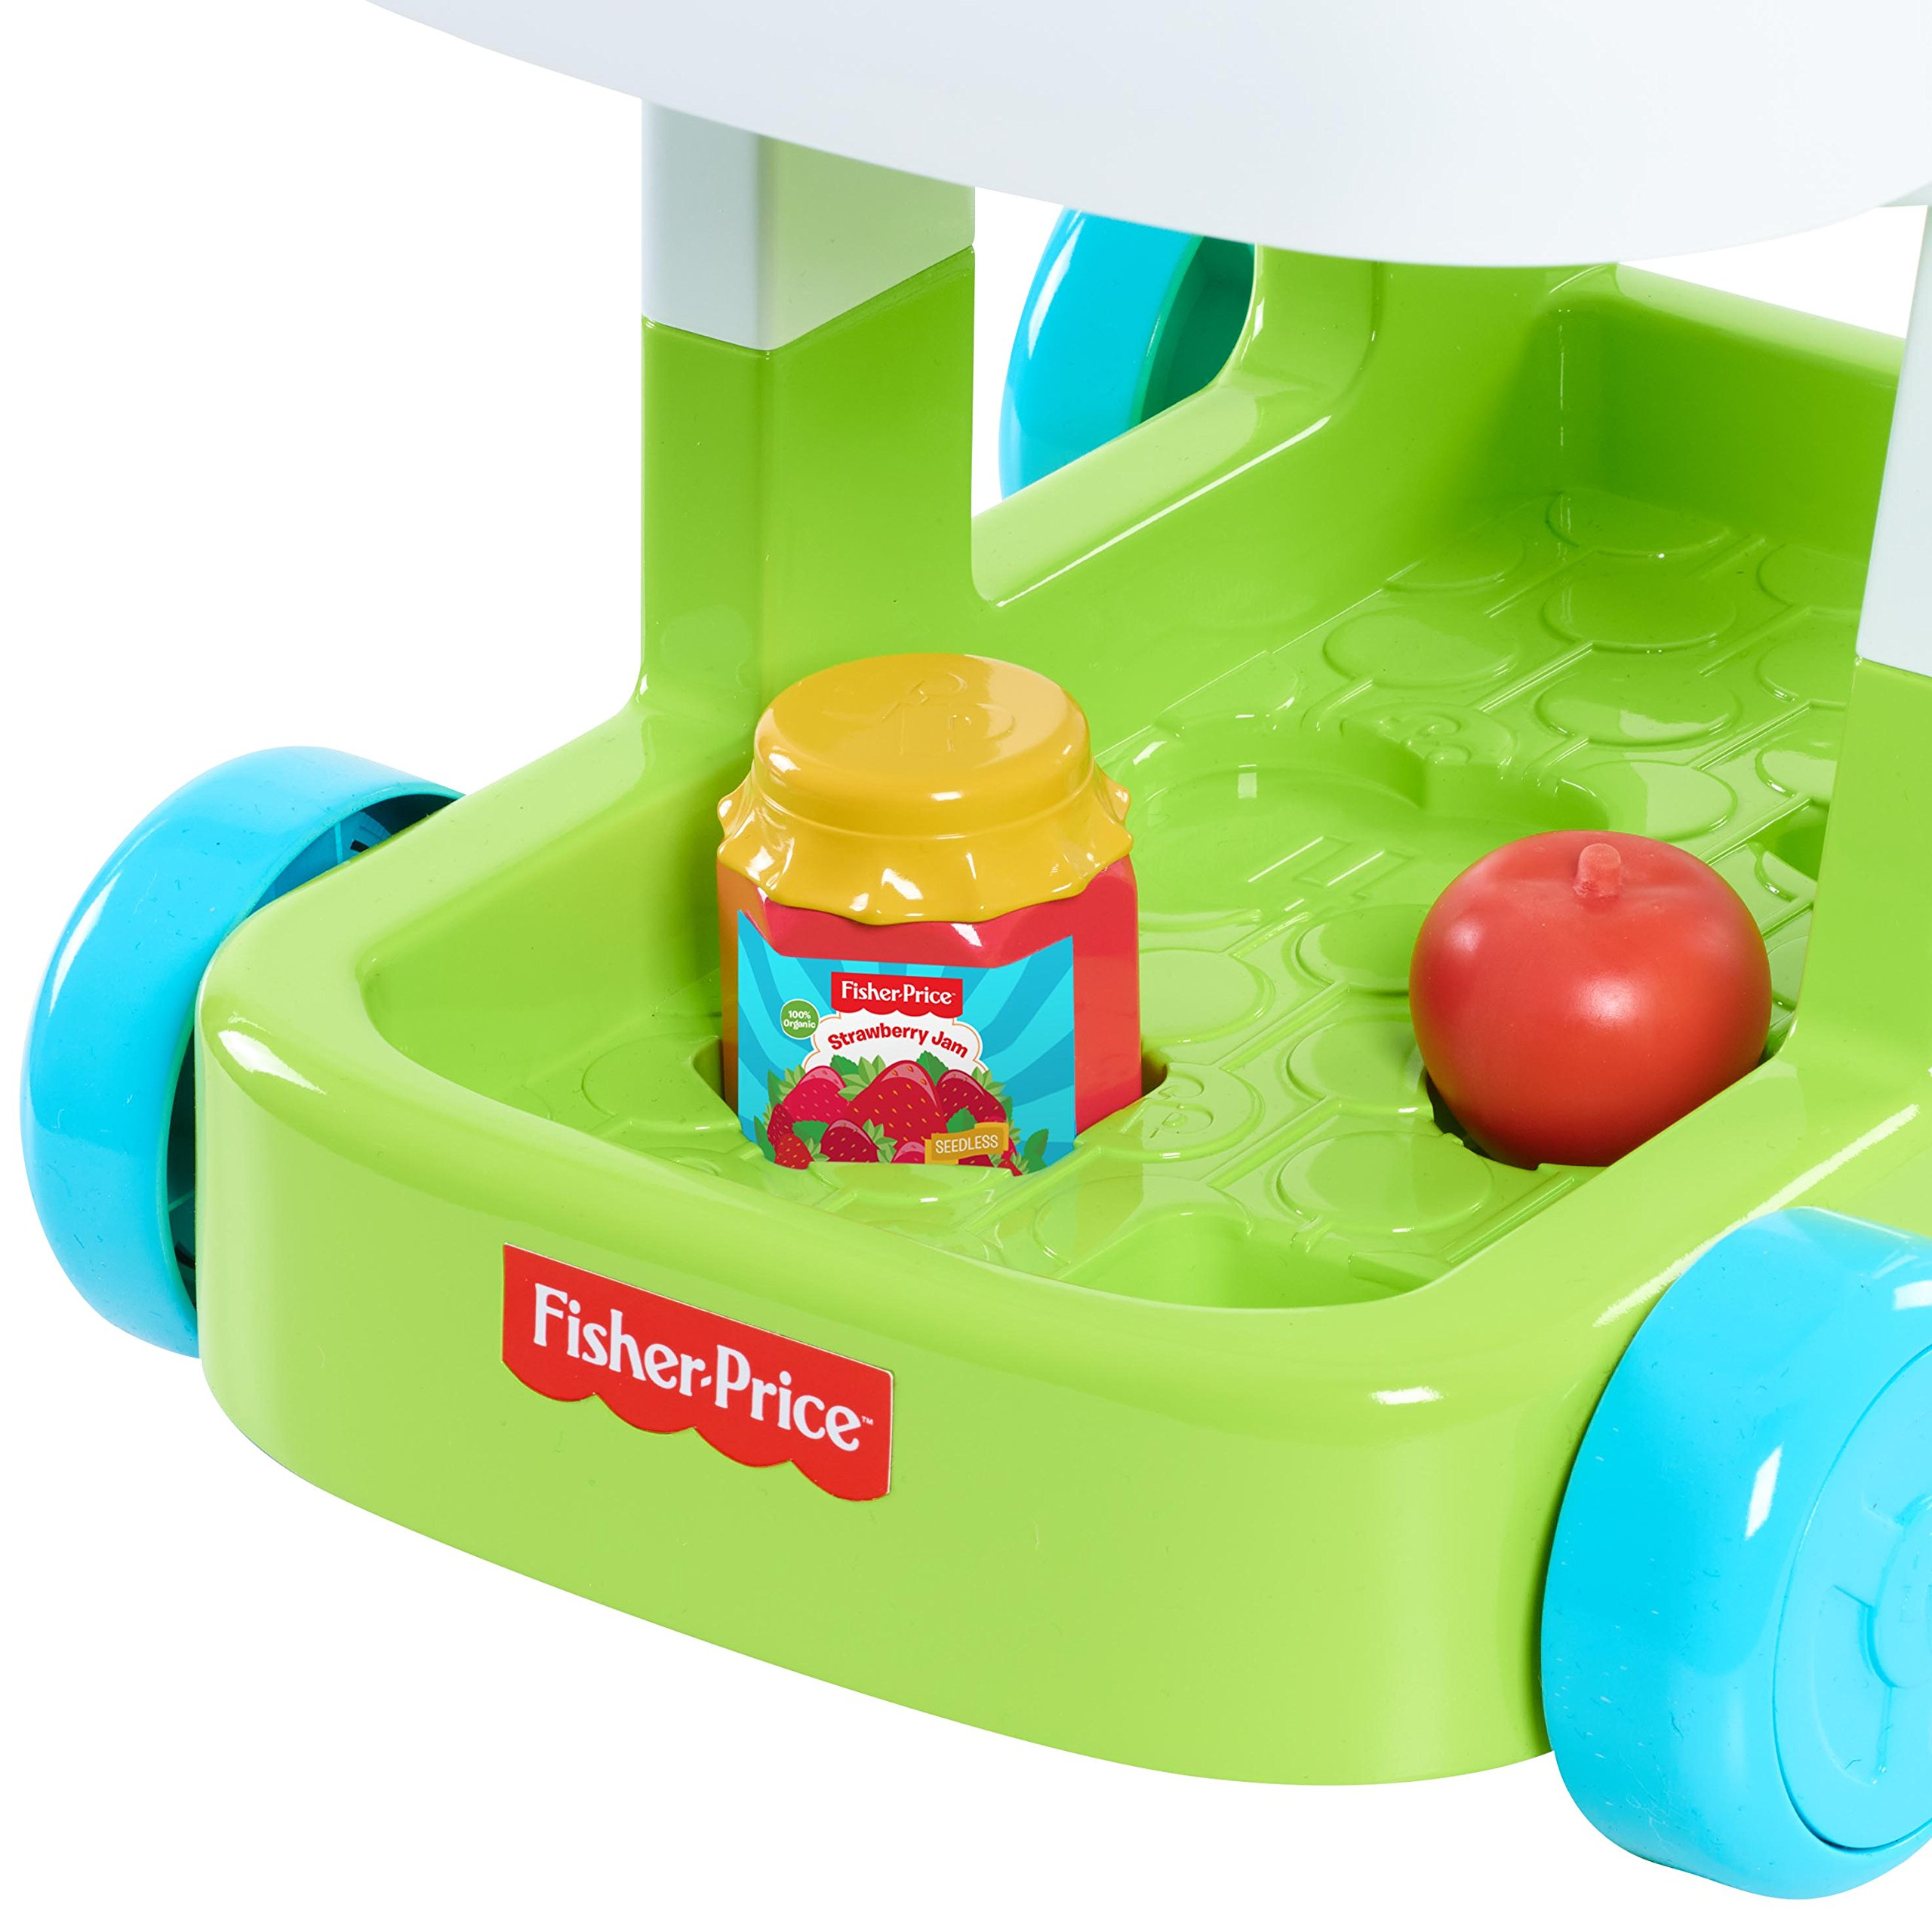 Fisher-Price 93525 Shopping Cart Toys, Multicolor by Fisher-Price (Image #5)